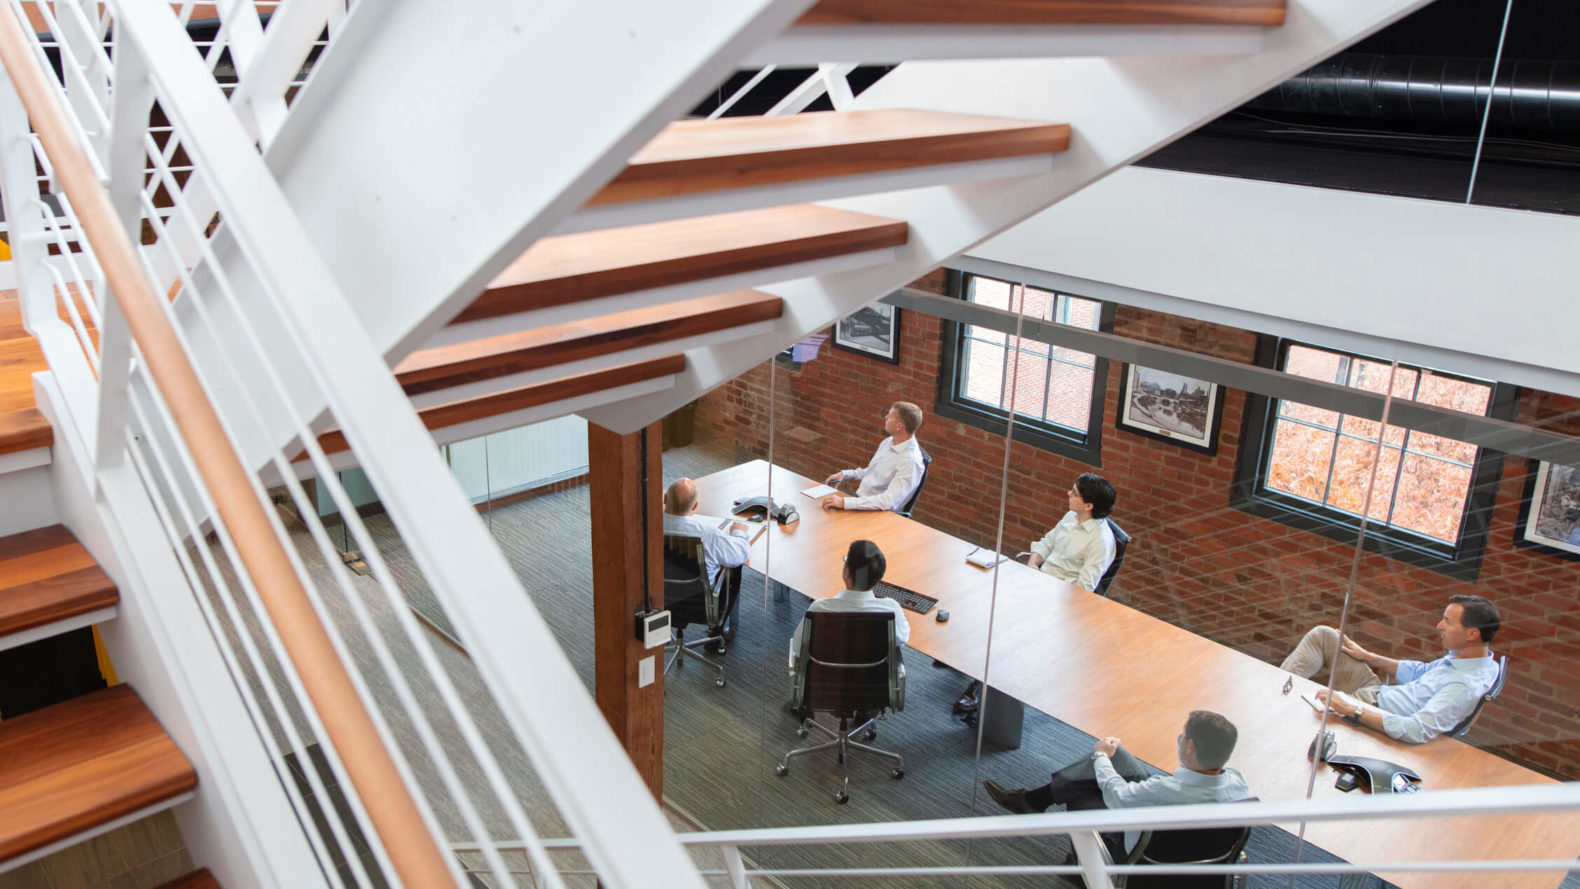 employees sitting at a conference room table seen through staircase above